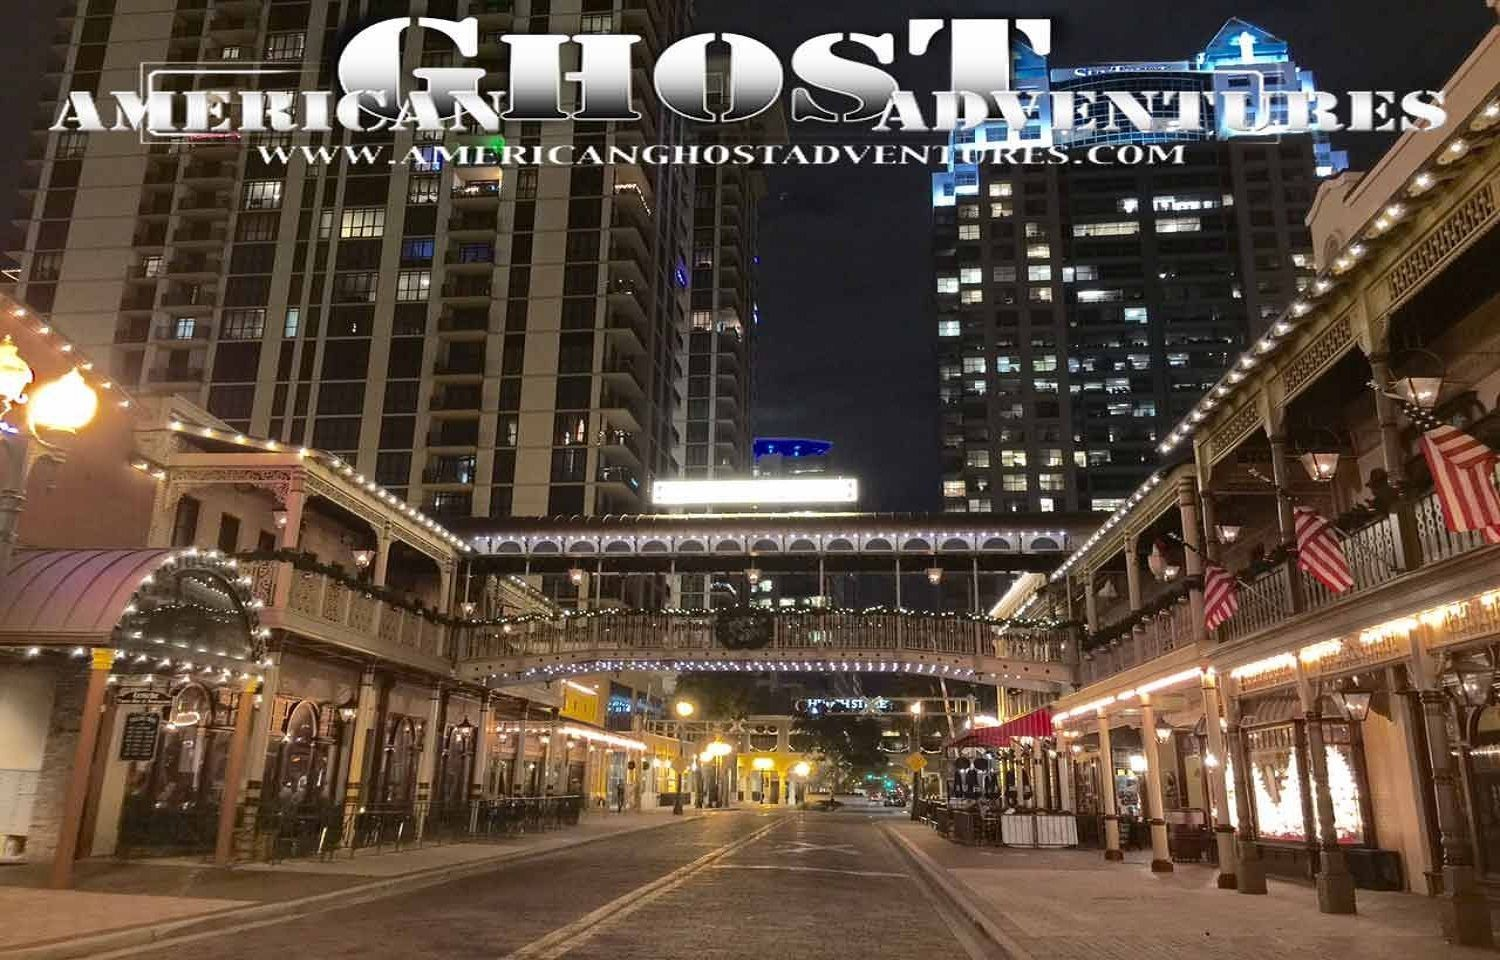 fl-american-ghost-adventures-ghost-tour-haunted-journeys